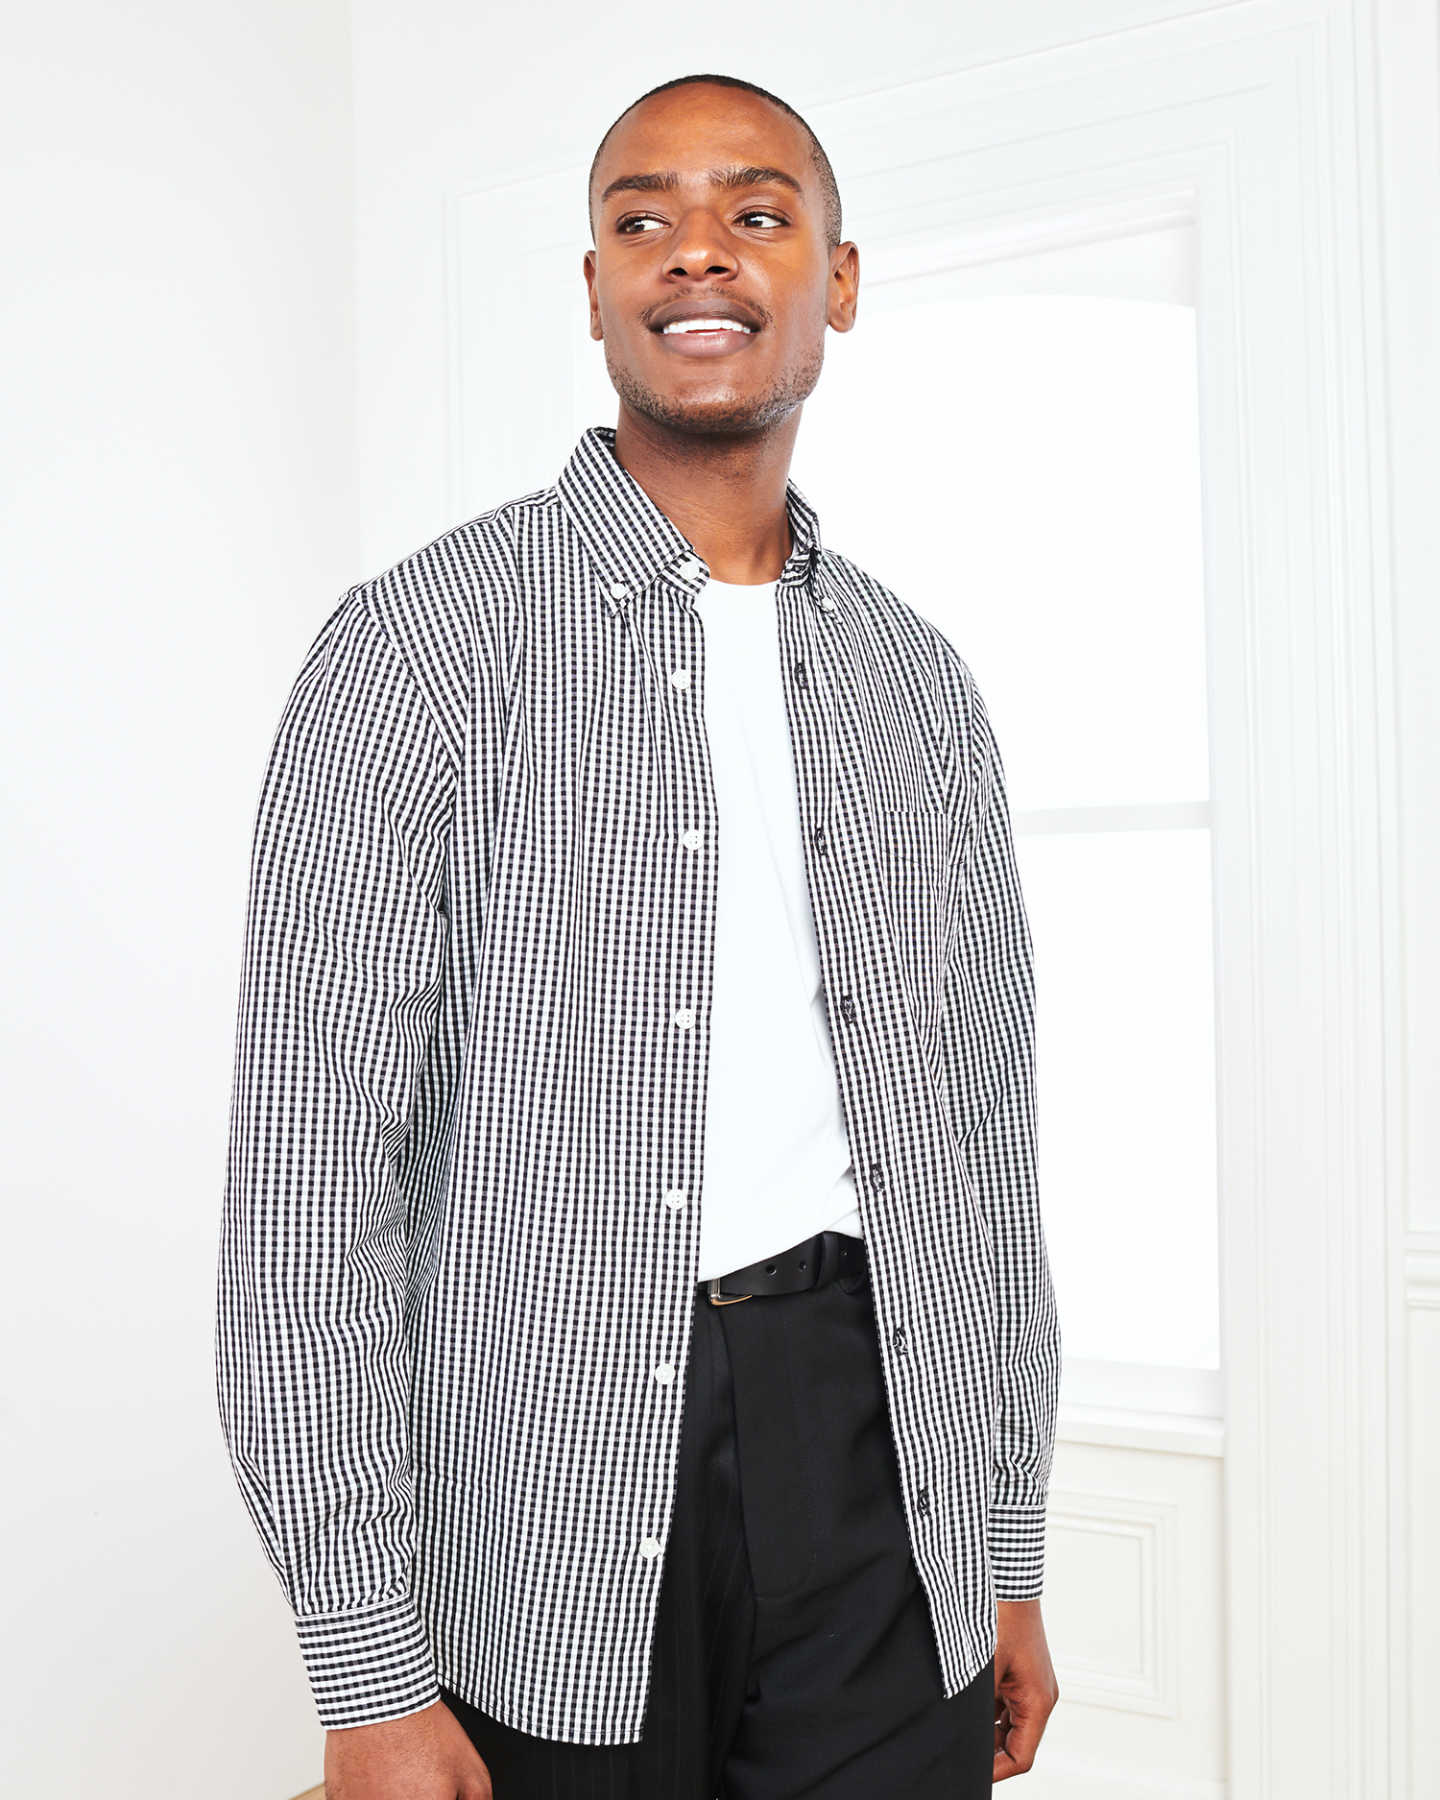 Carbon Wash Gingham Shirt - Black/White - 1